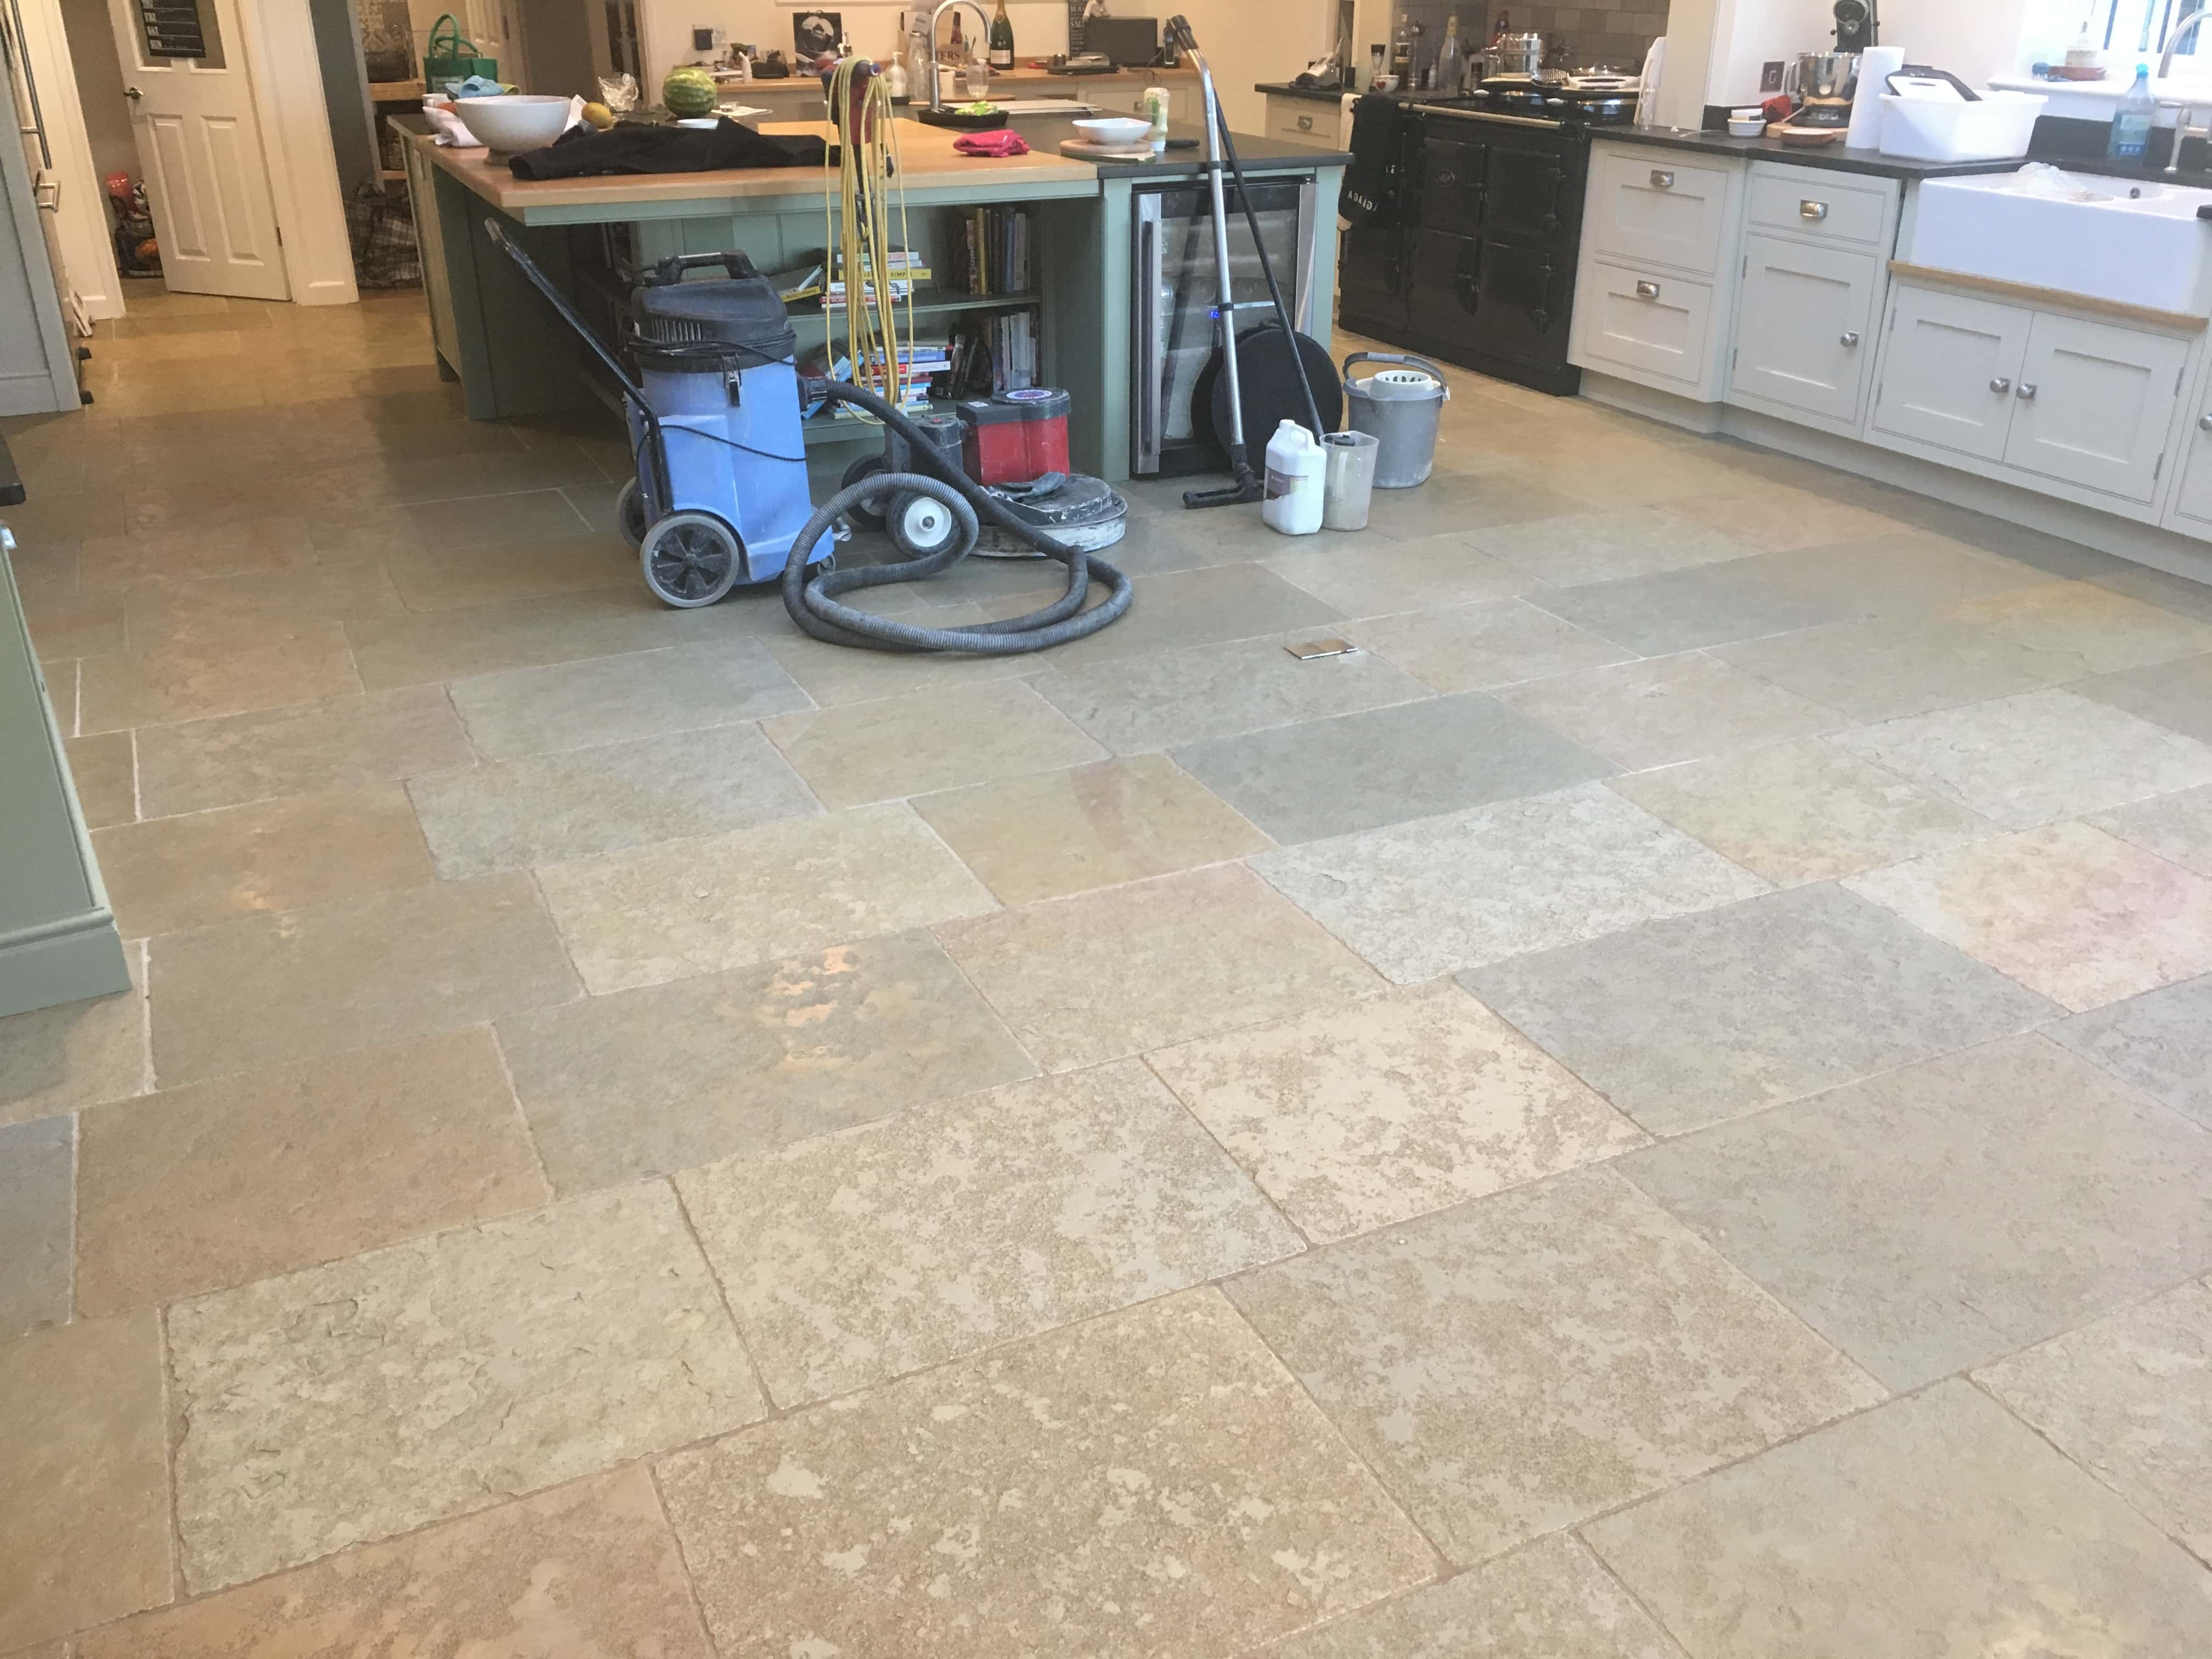 Sandstone Kitchen Floor Before Cleaning Farnham